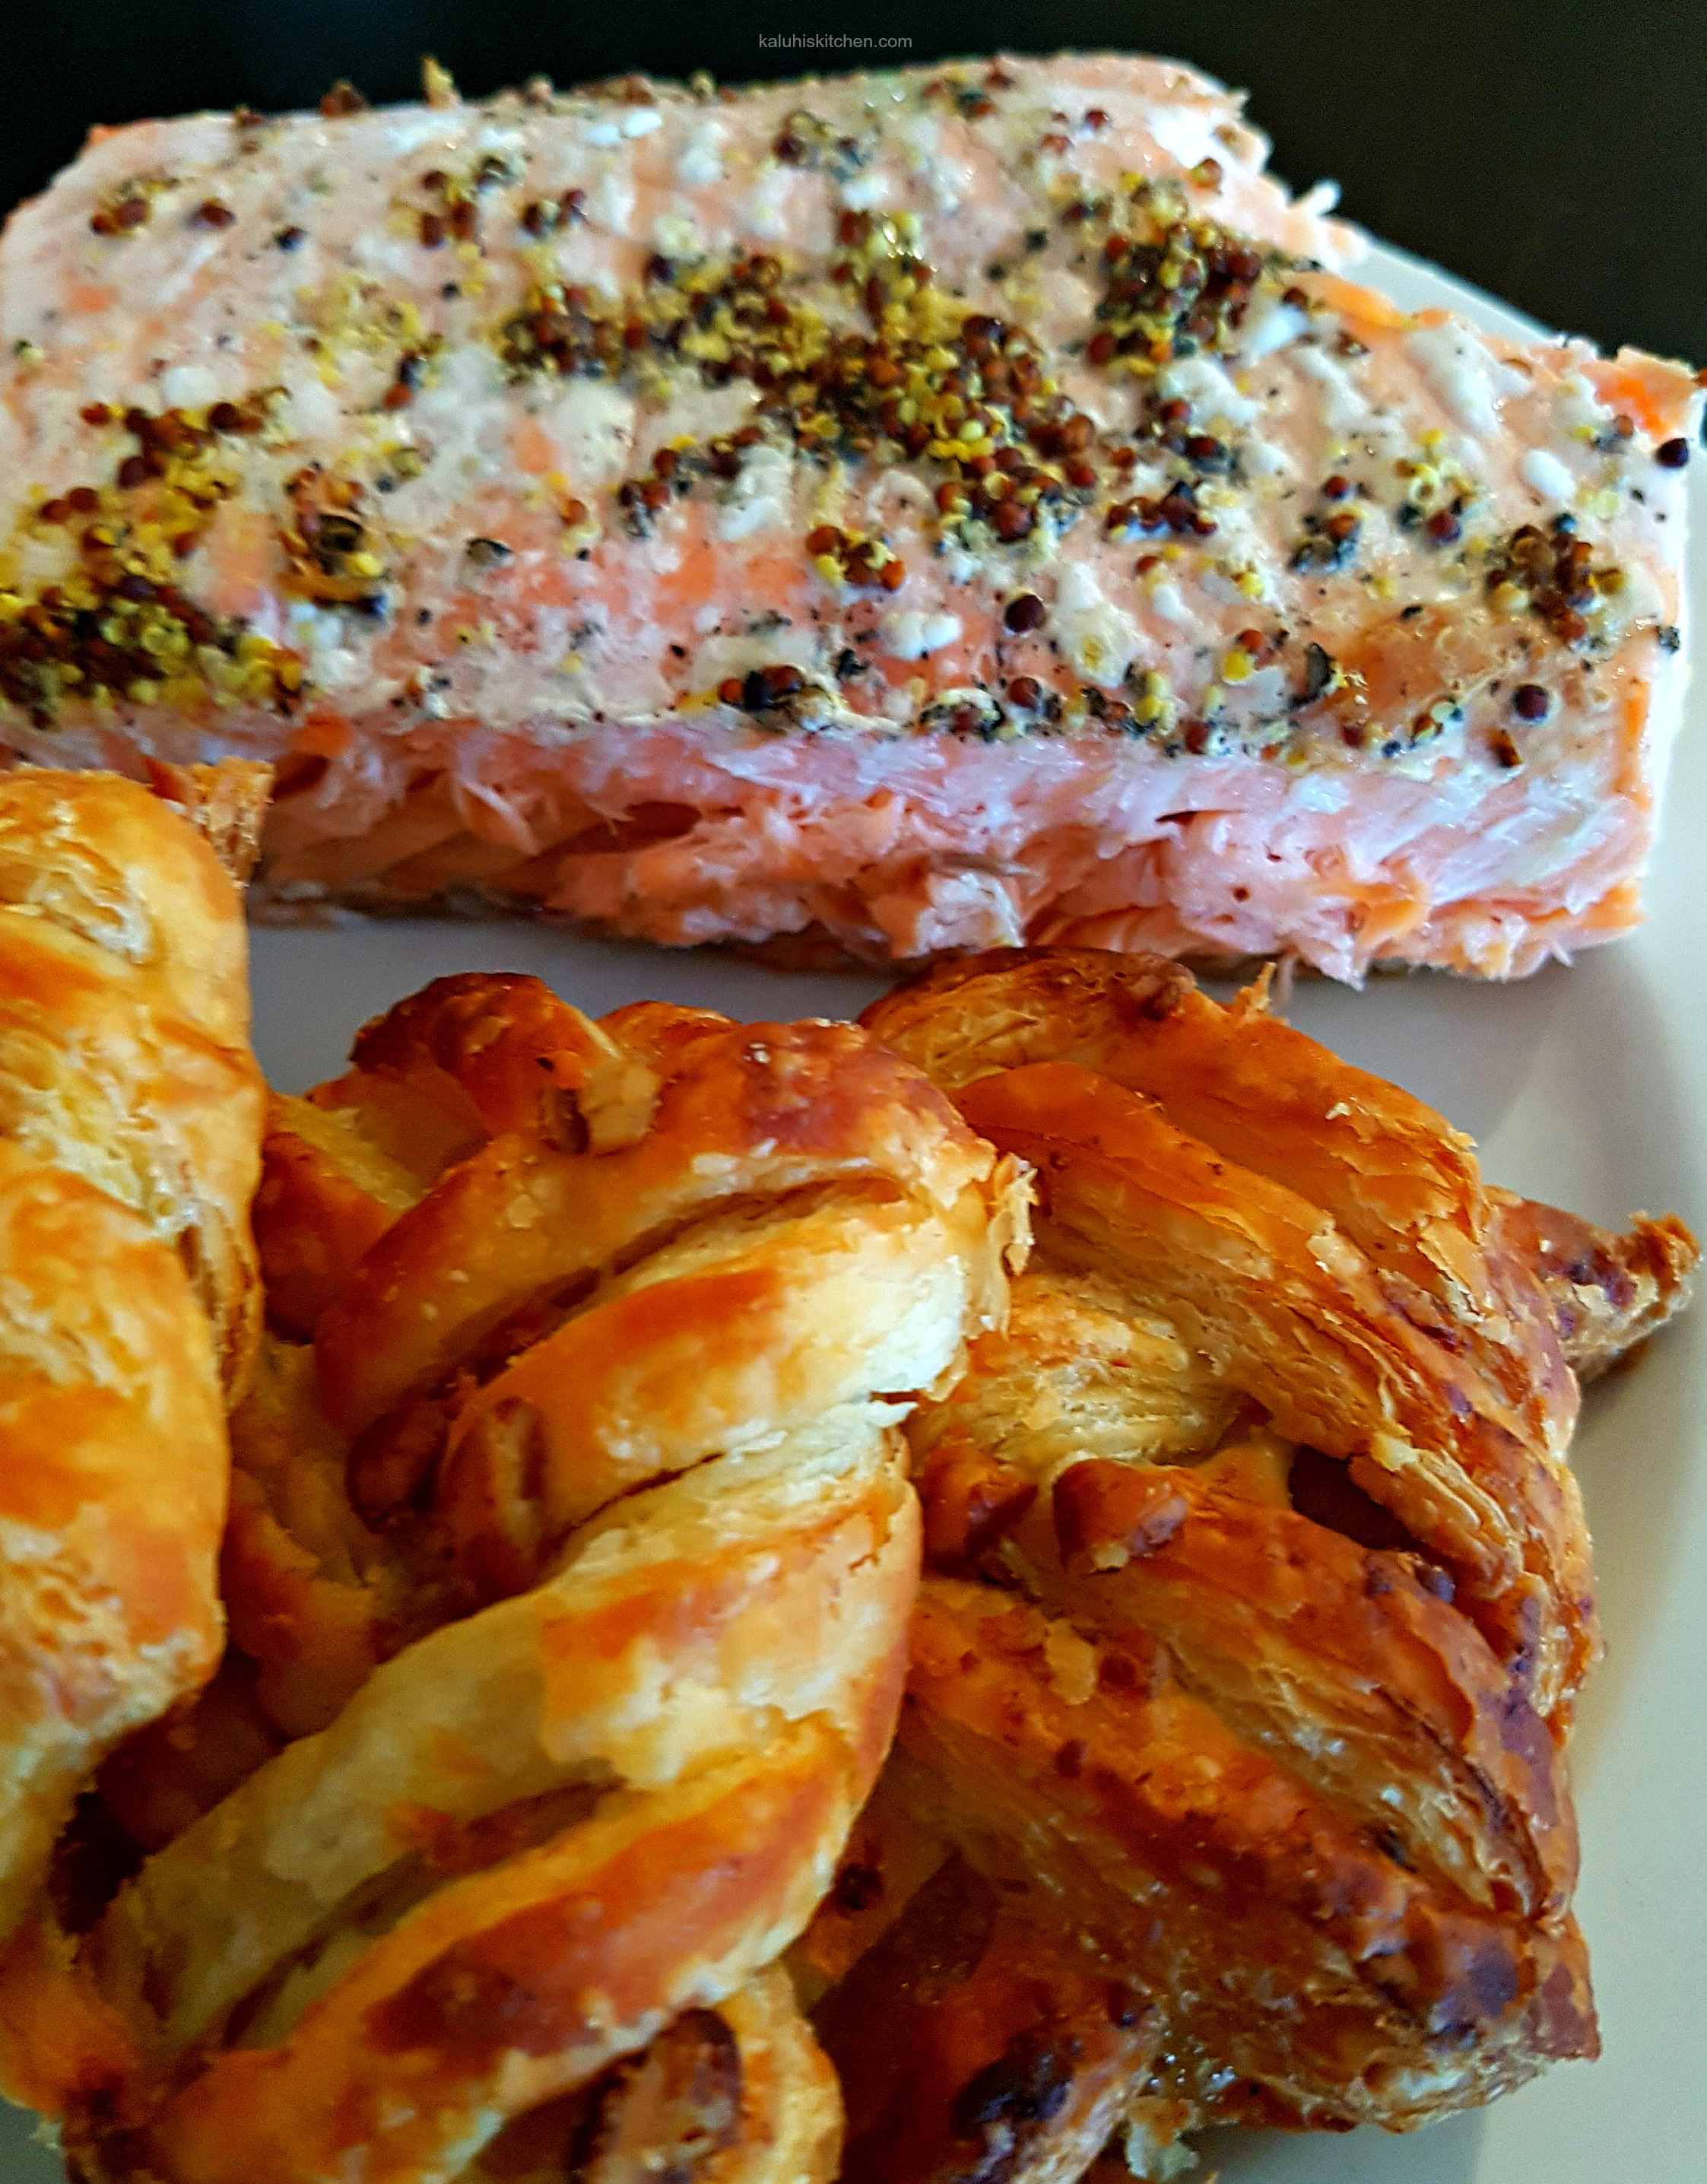 salmon-with-whole-grain-mustard-together-with-pastries_jozi-with-google_kaluhiskitchen-com